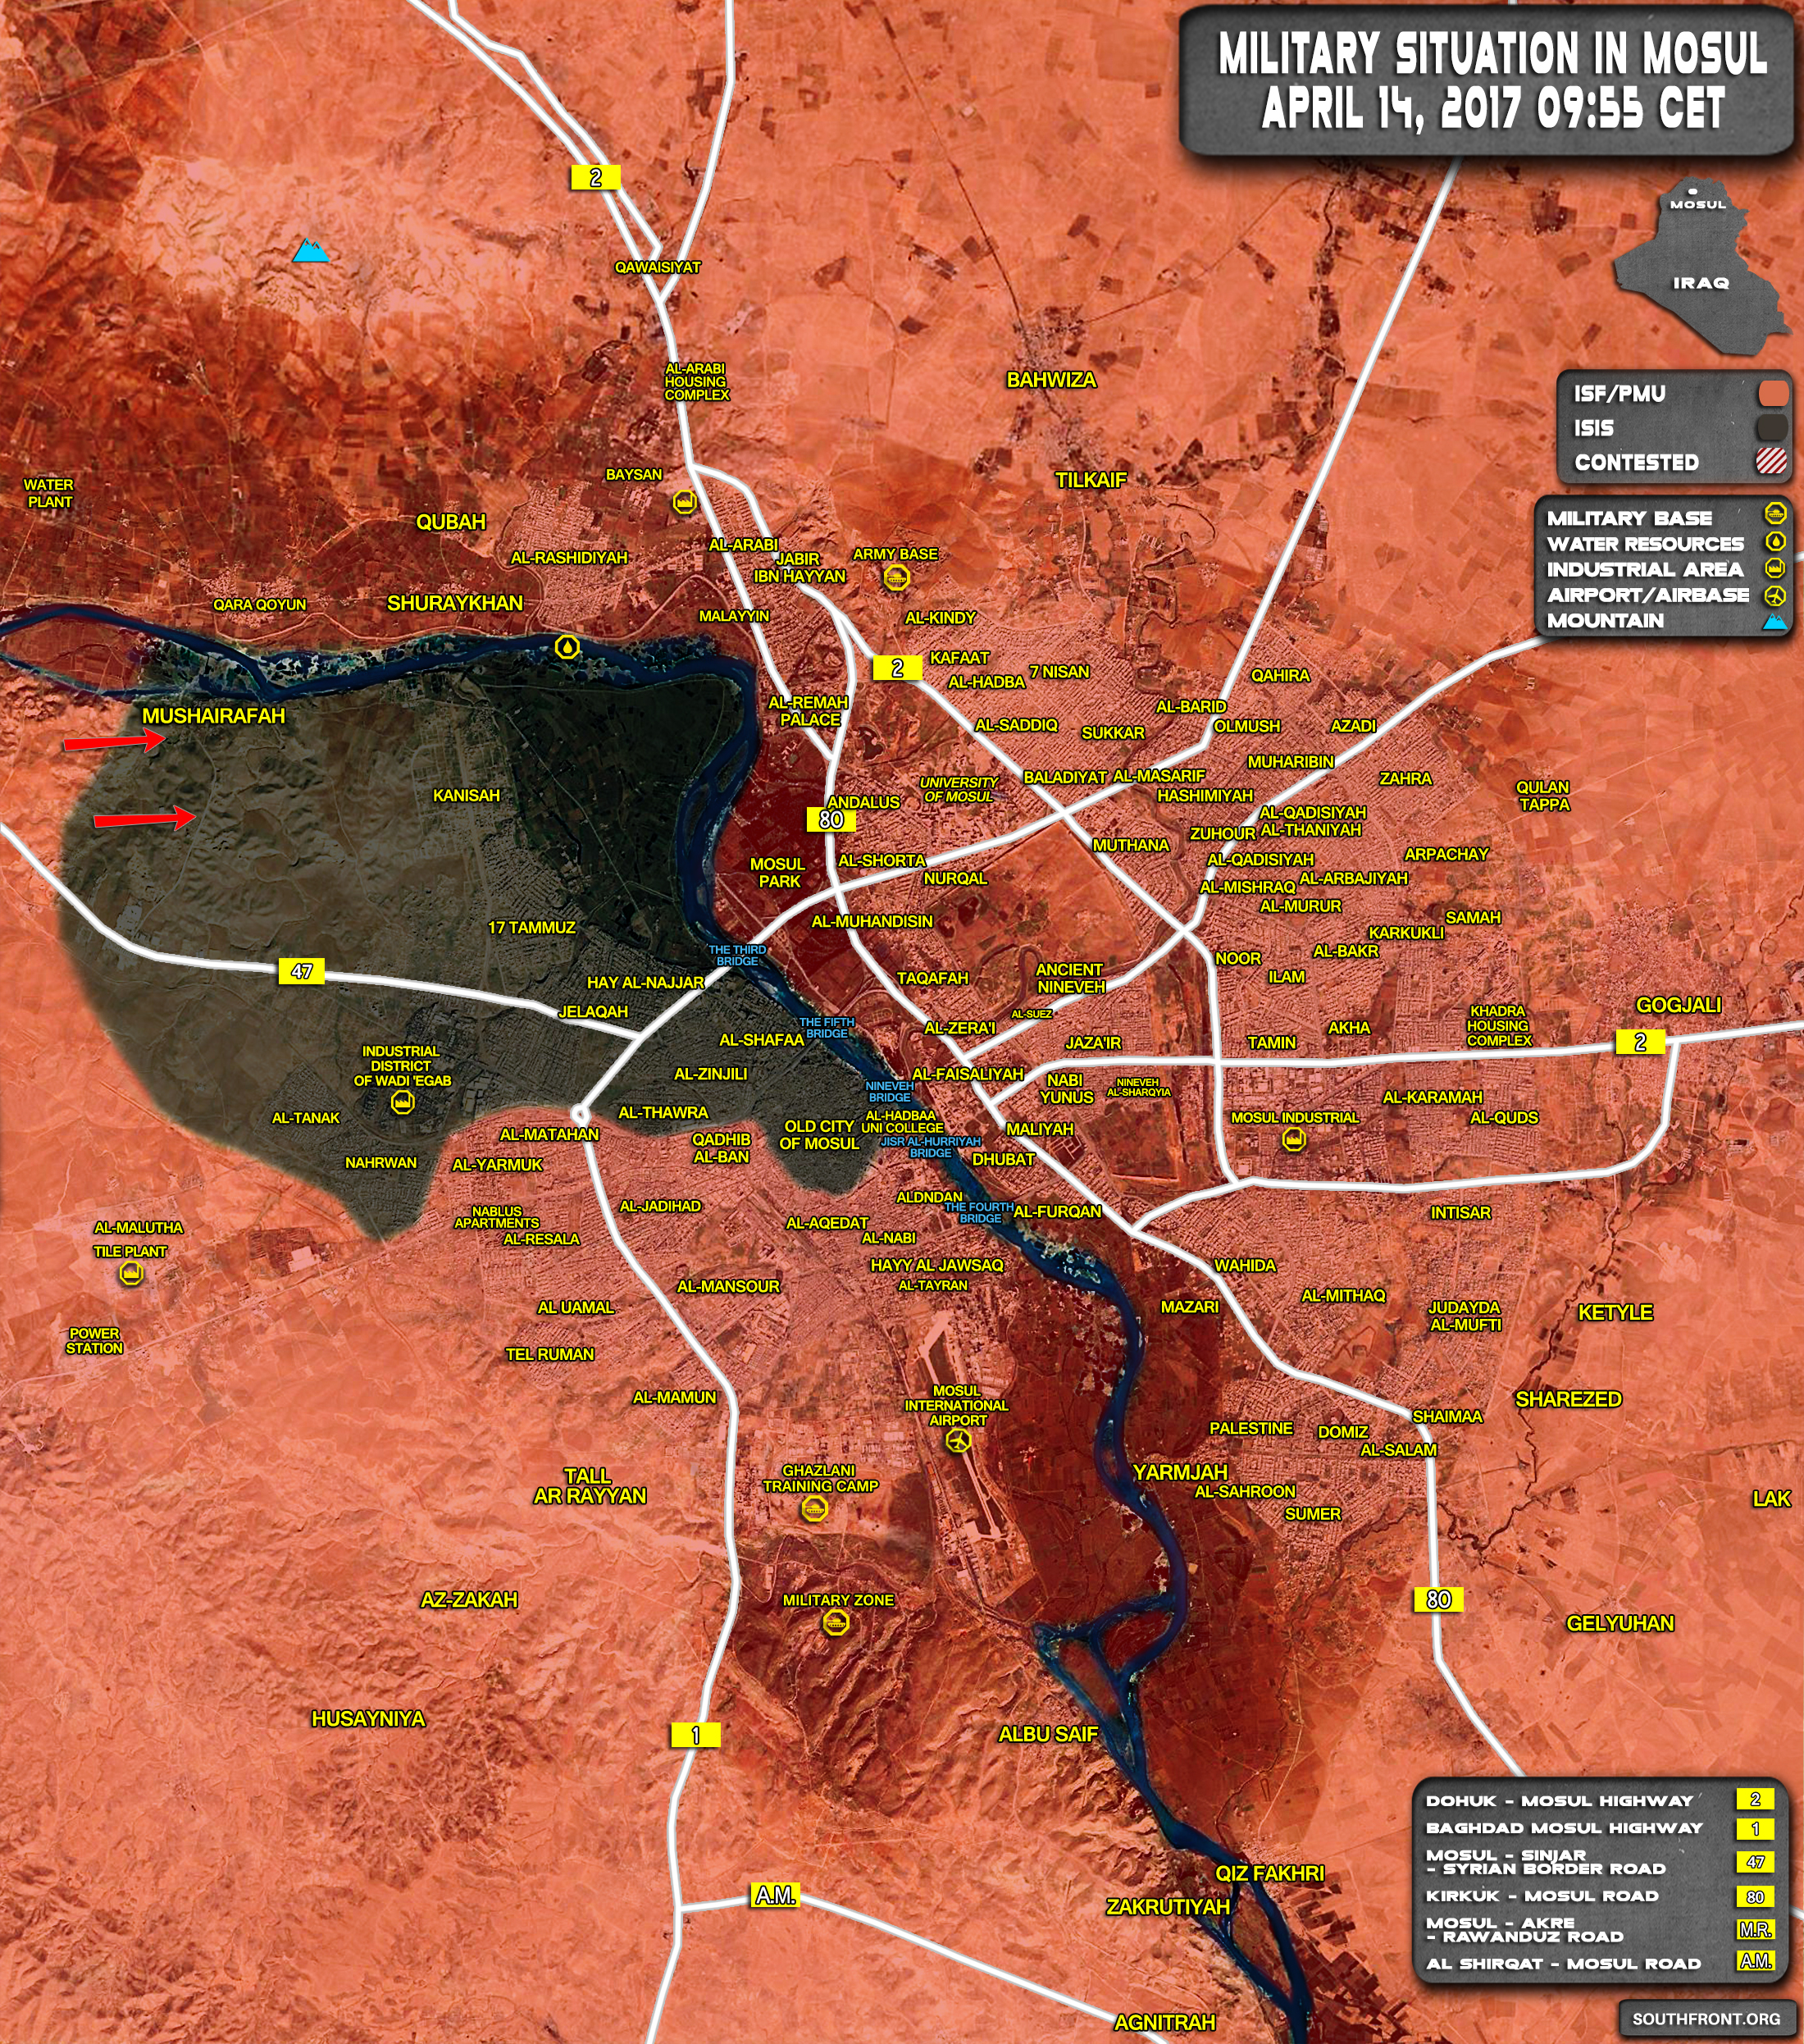 Military Situation In Iraqi City Of Mosul On April 14, 2017 (Map Update)